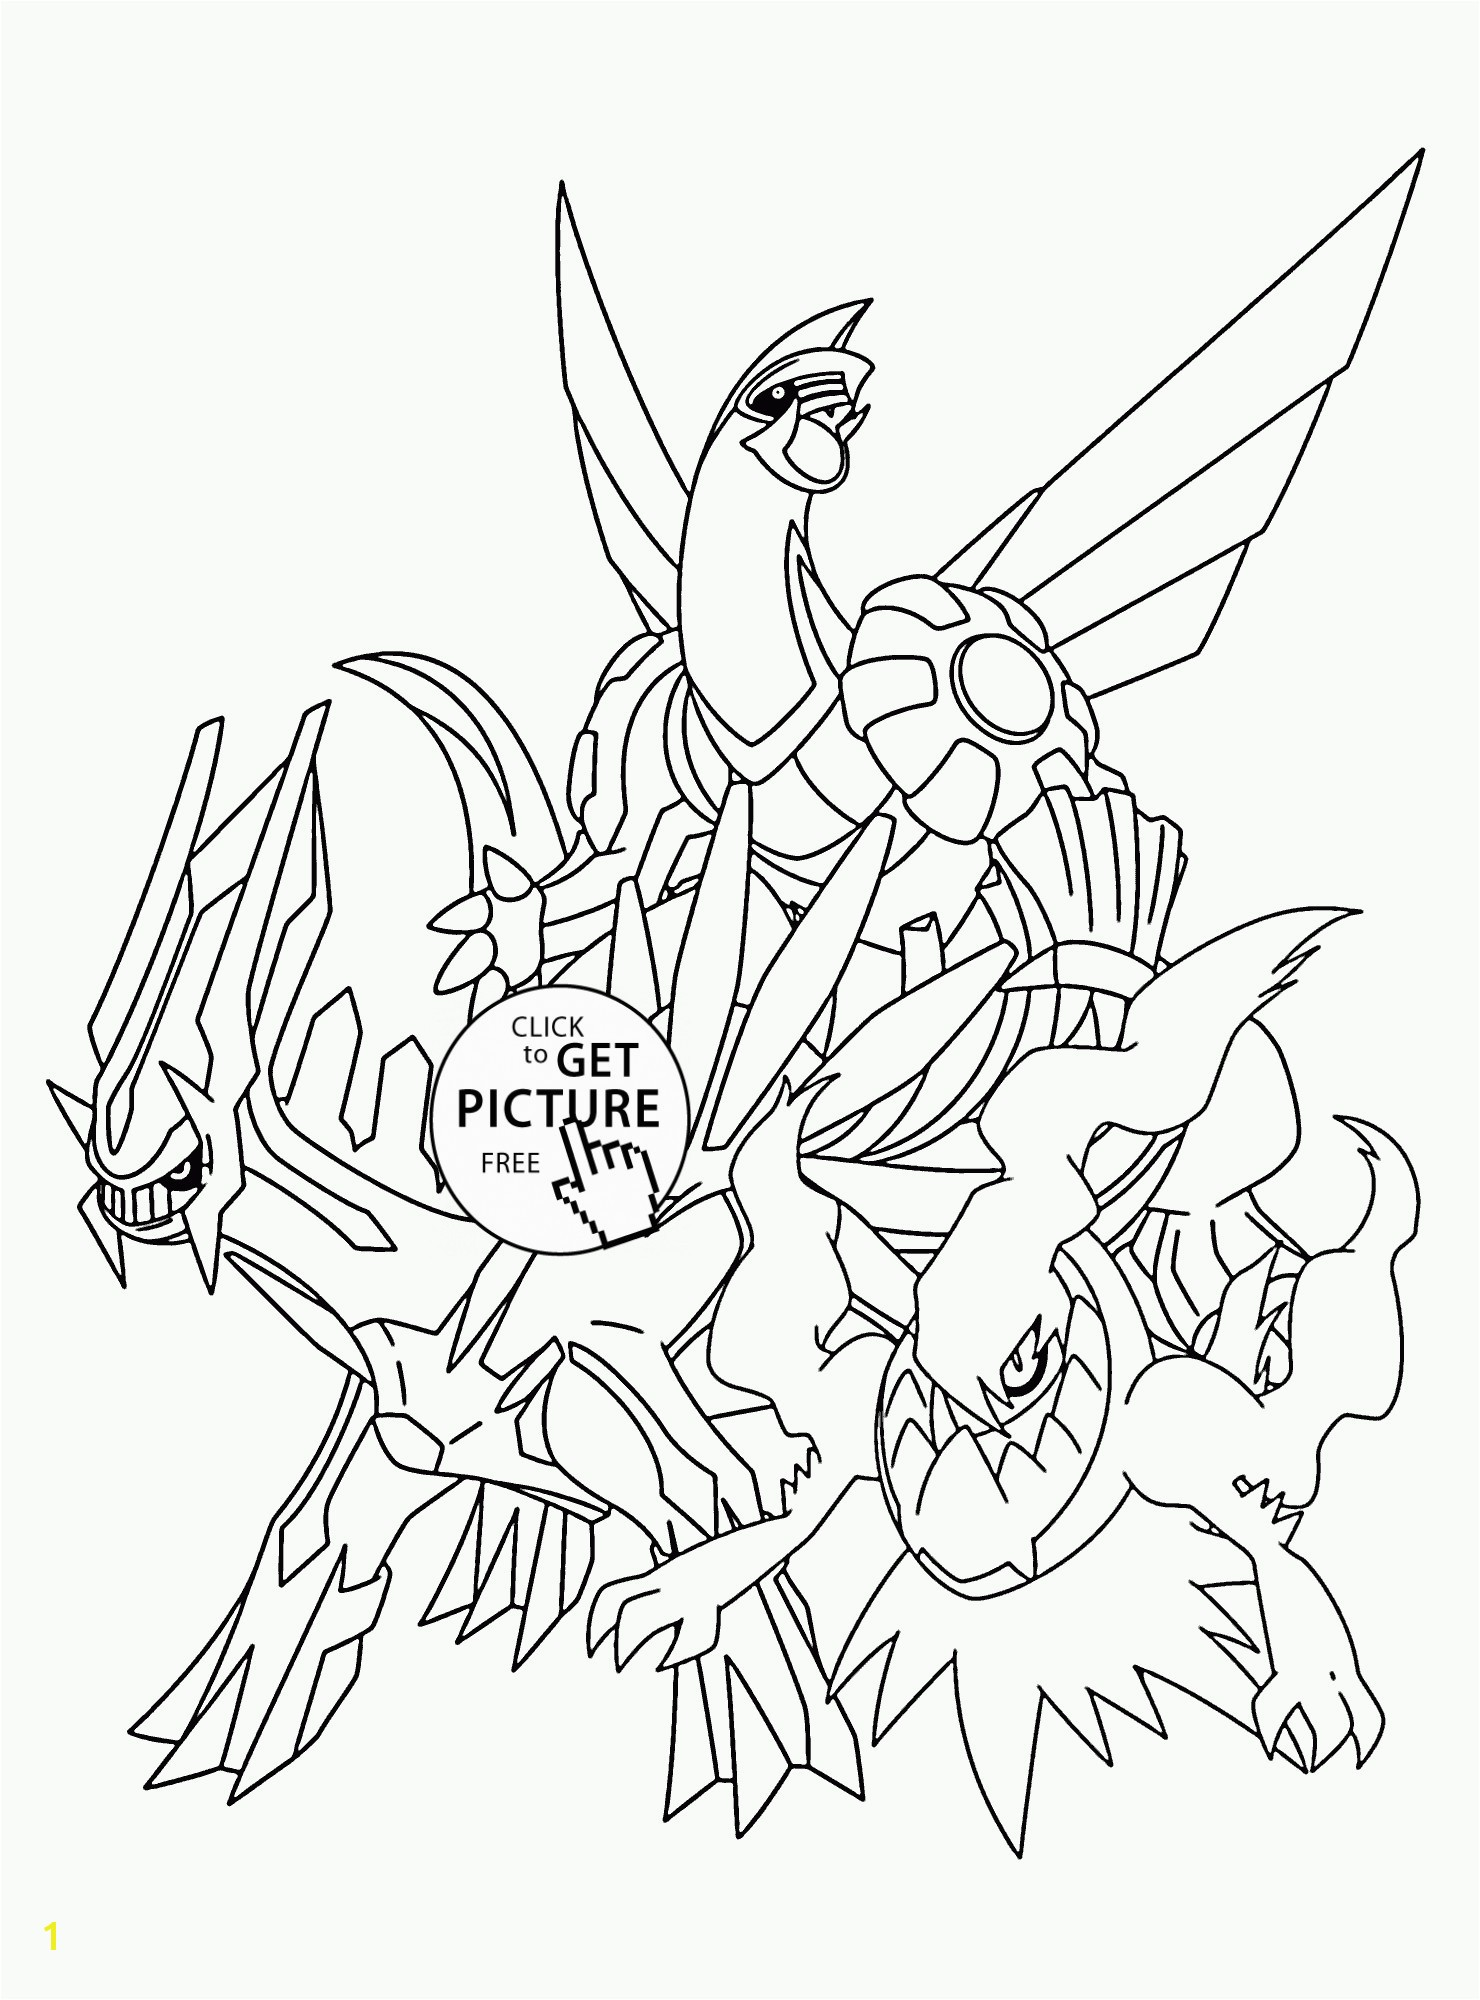 Legendary pokemon coloring pages lugia 1480x2000 Legends Pokemon Drawings To Print Small Pokemon Drawings To Print